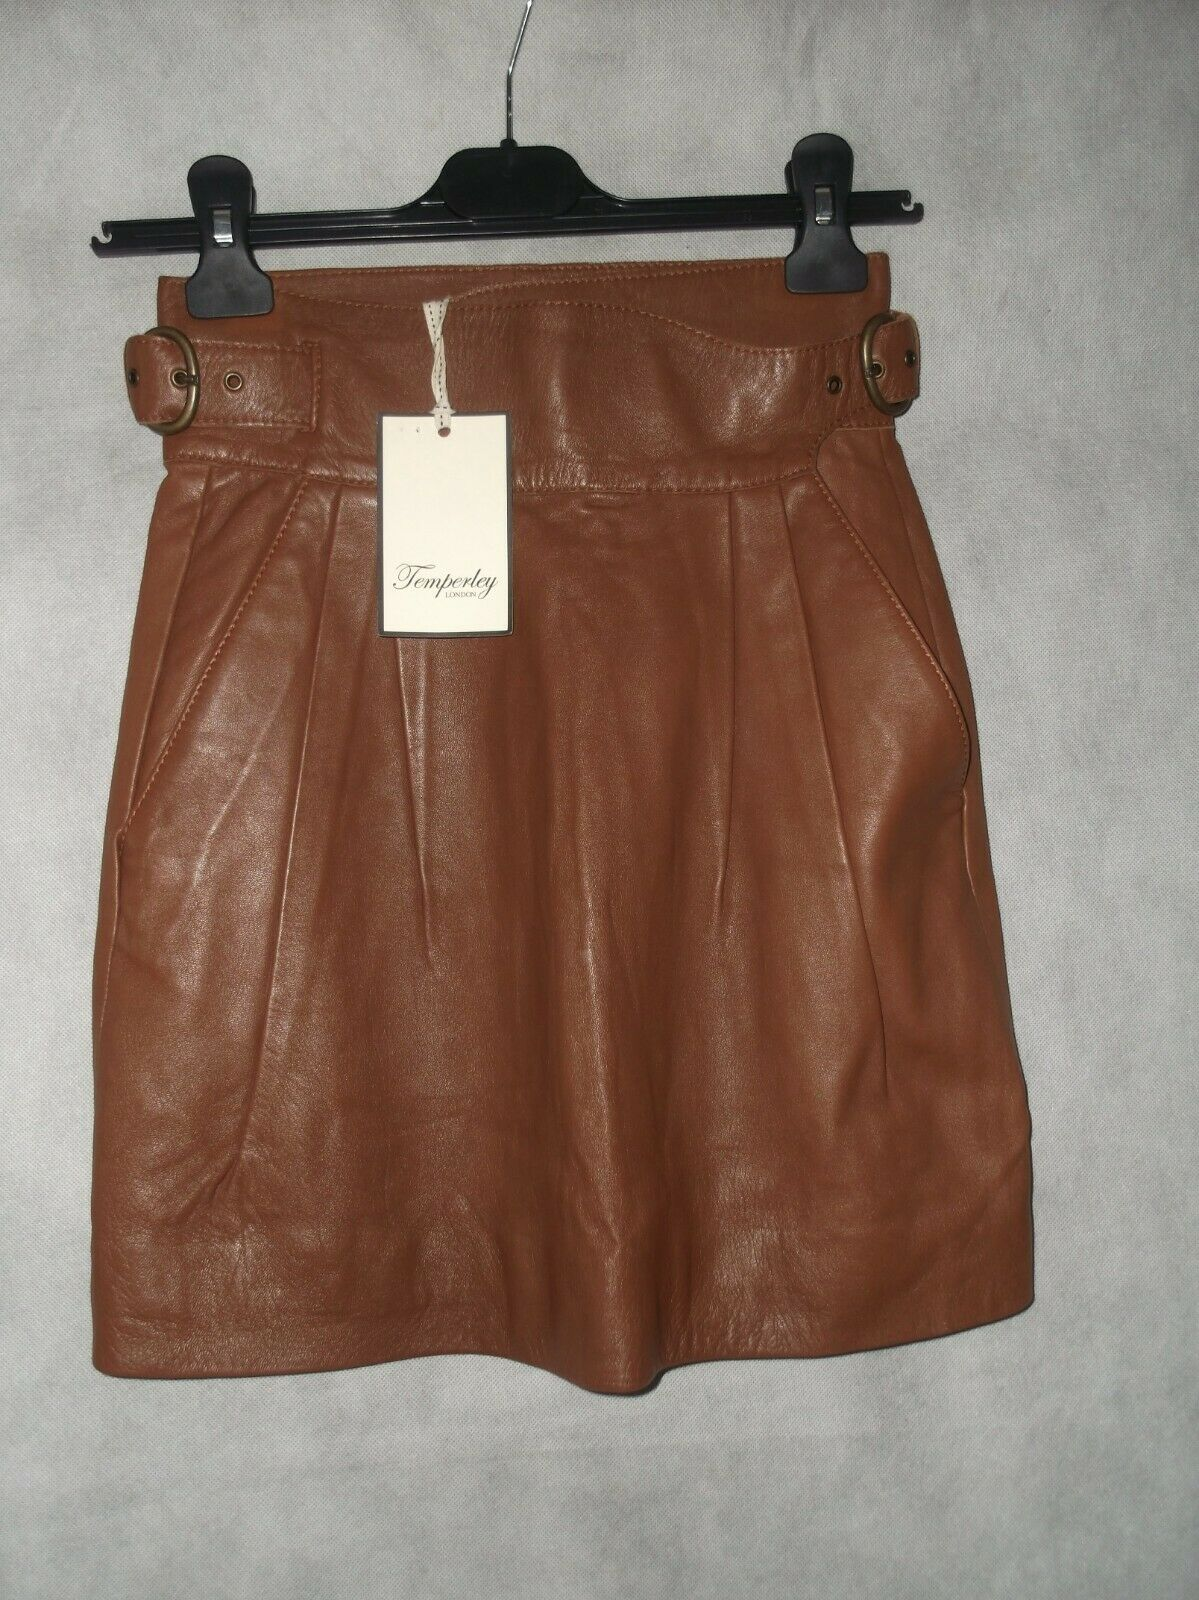 NEW WITH TAGS Temperley London tan leather belted mini Rock Größe 8